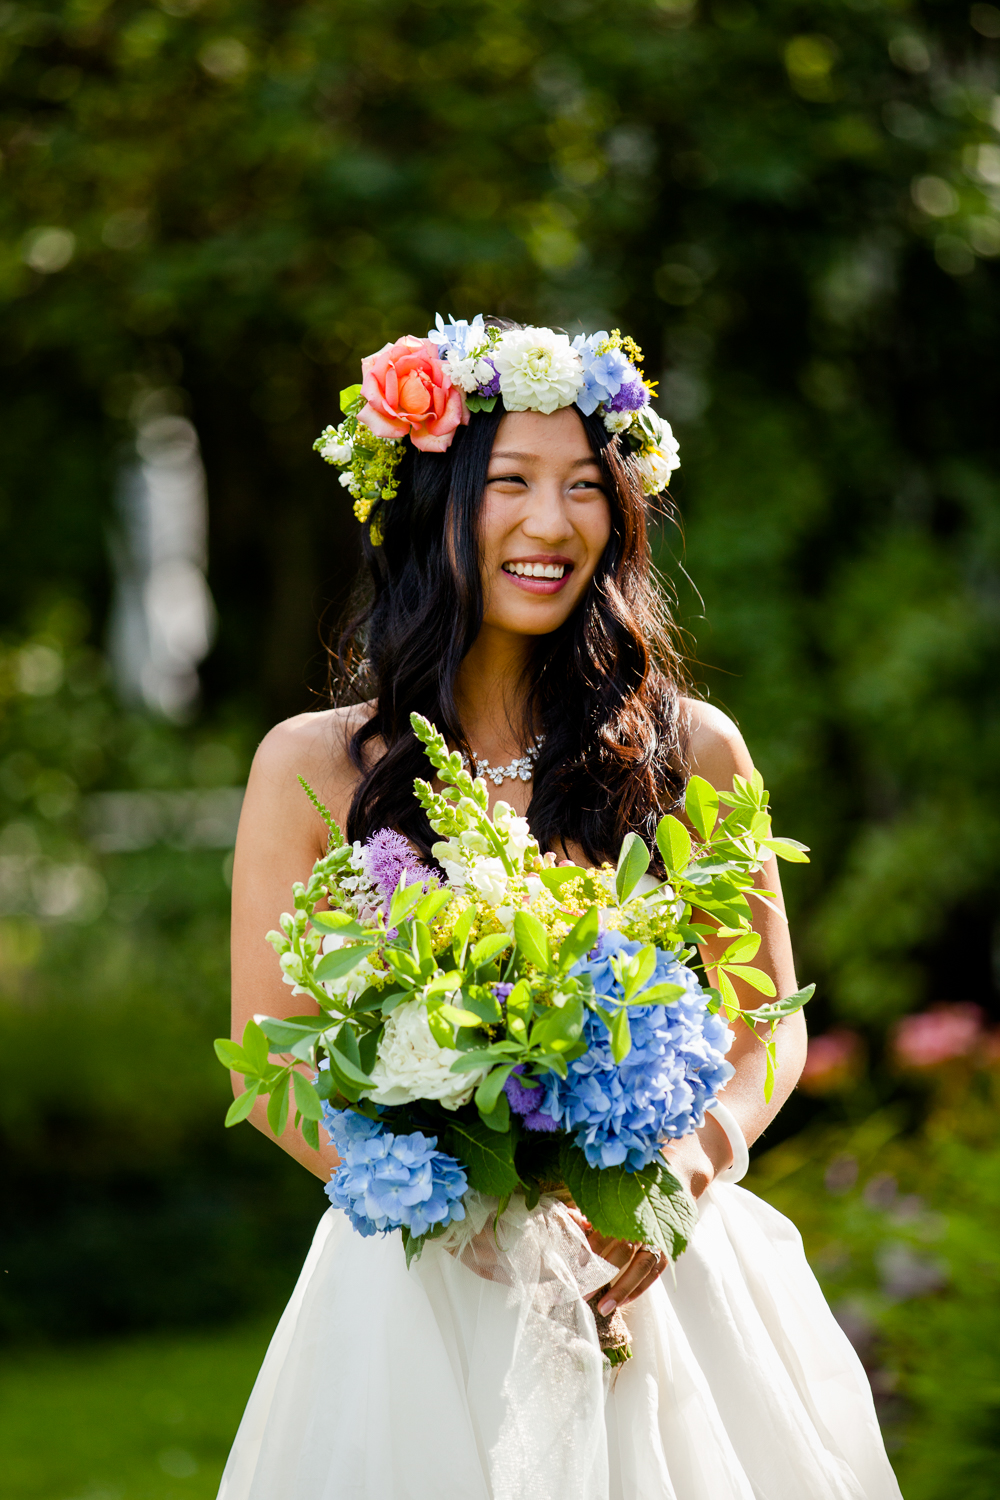 Bride smiles while holding bouquet.